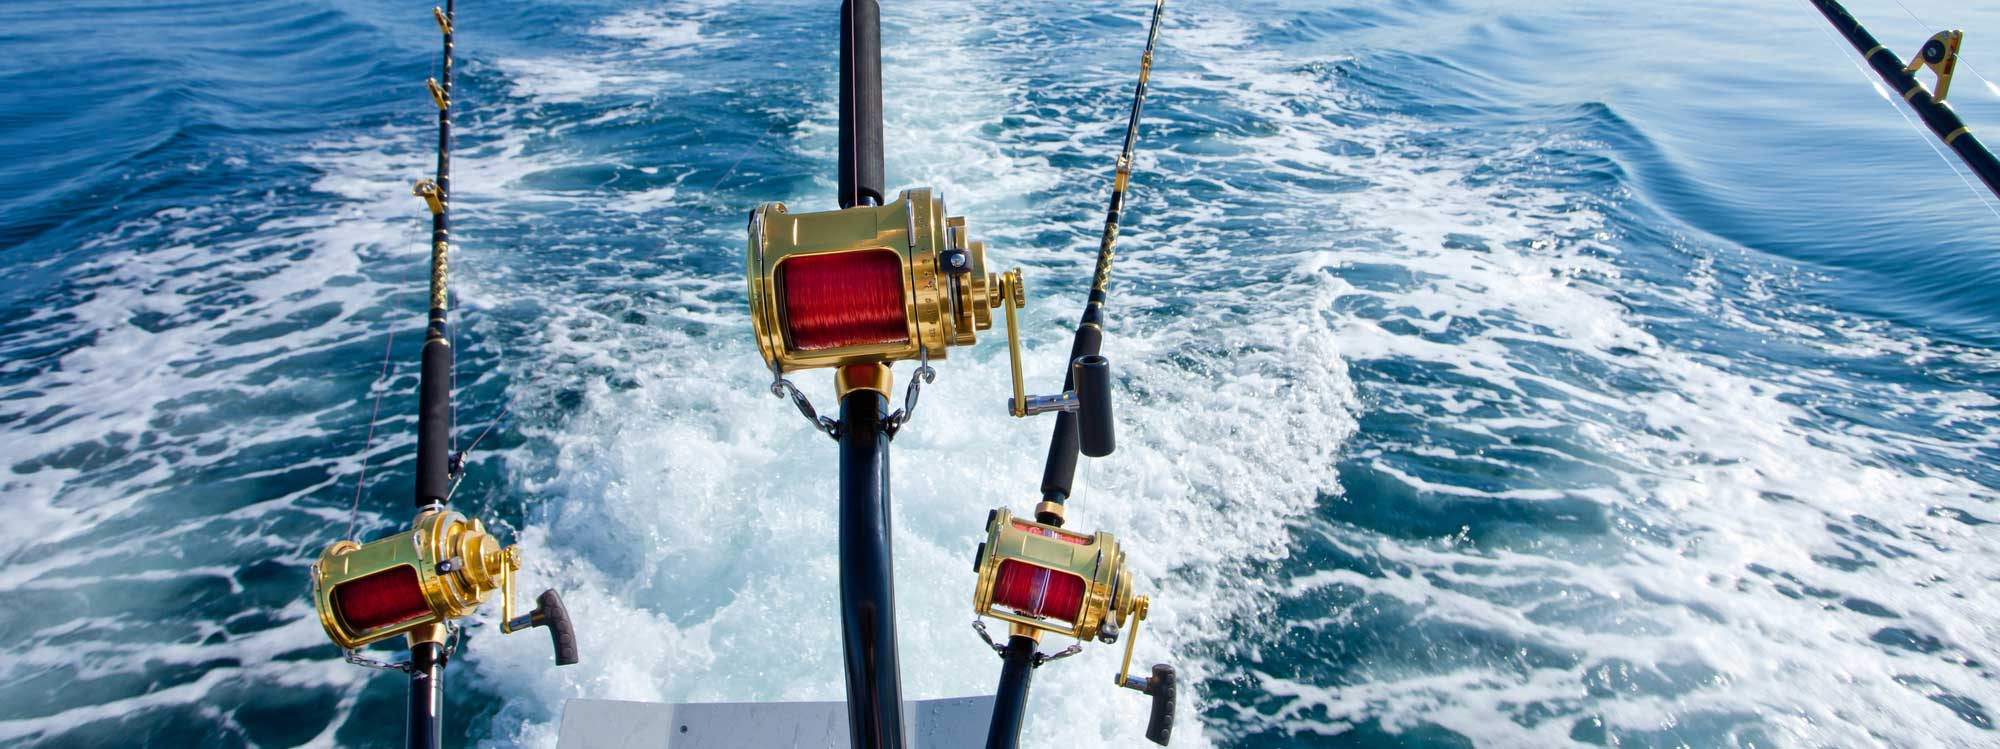 Three fishing reels off the back of a boat in the ocean